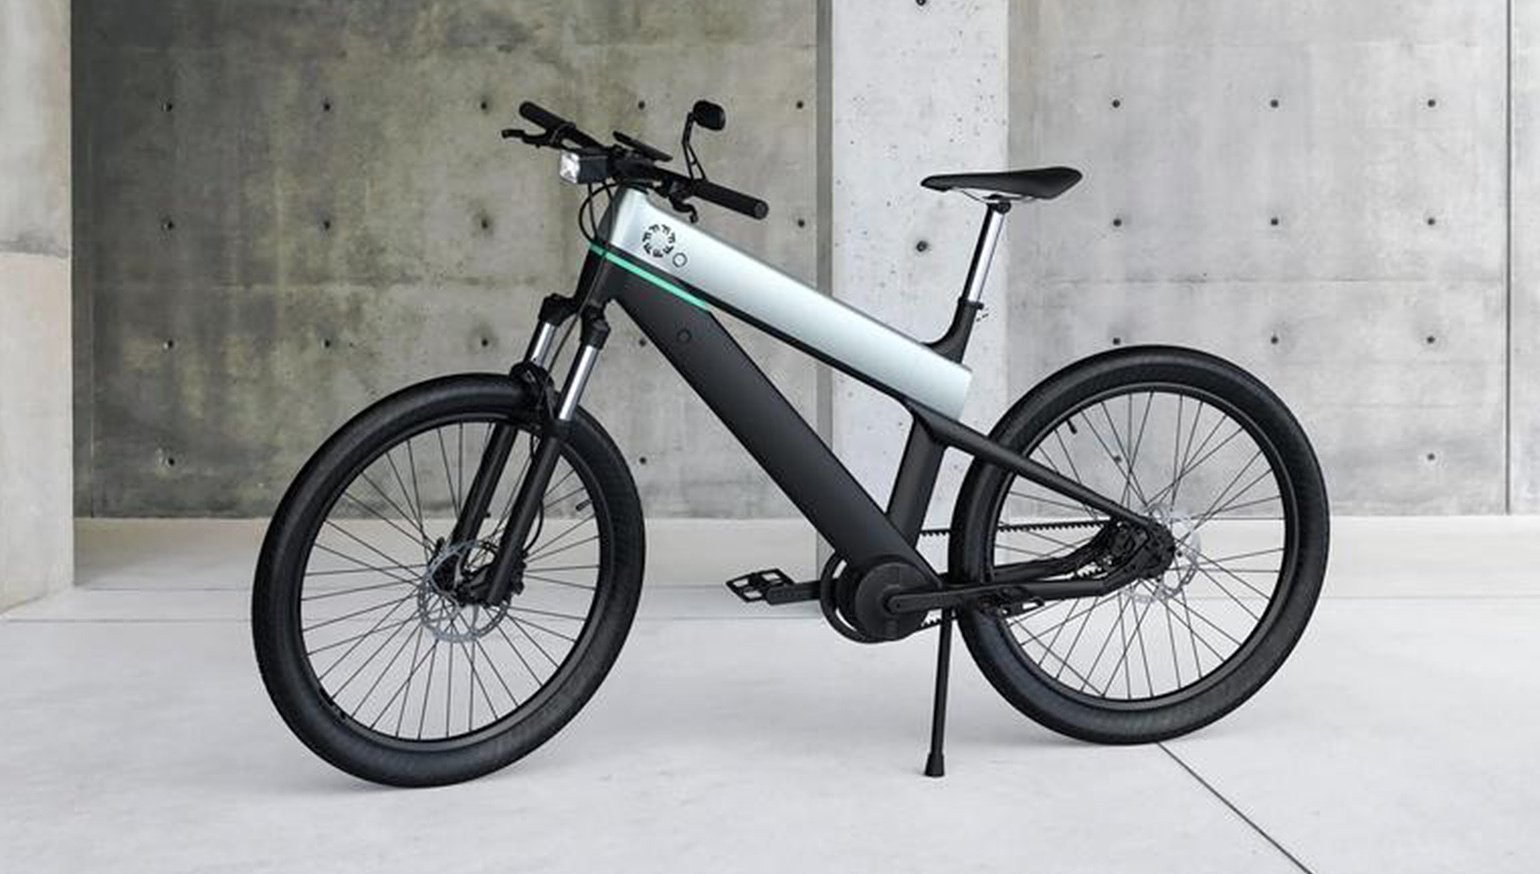 Erik Buell's Fuell electric bicycle project over 1100